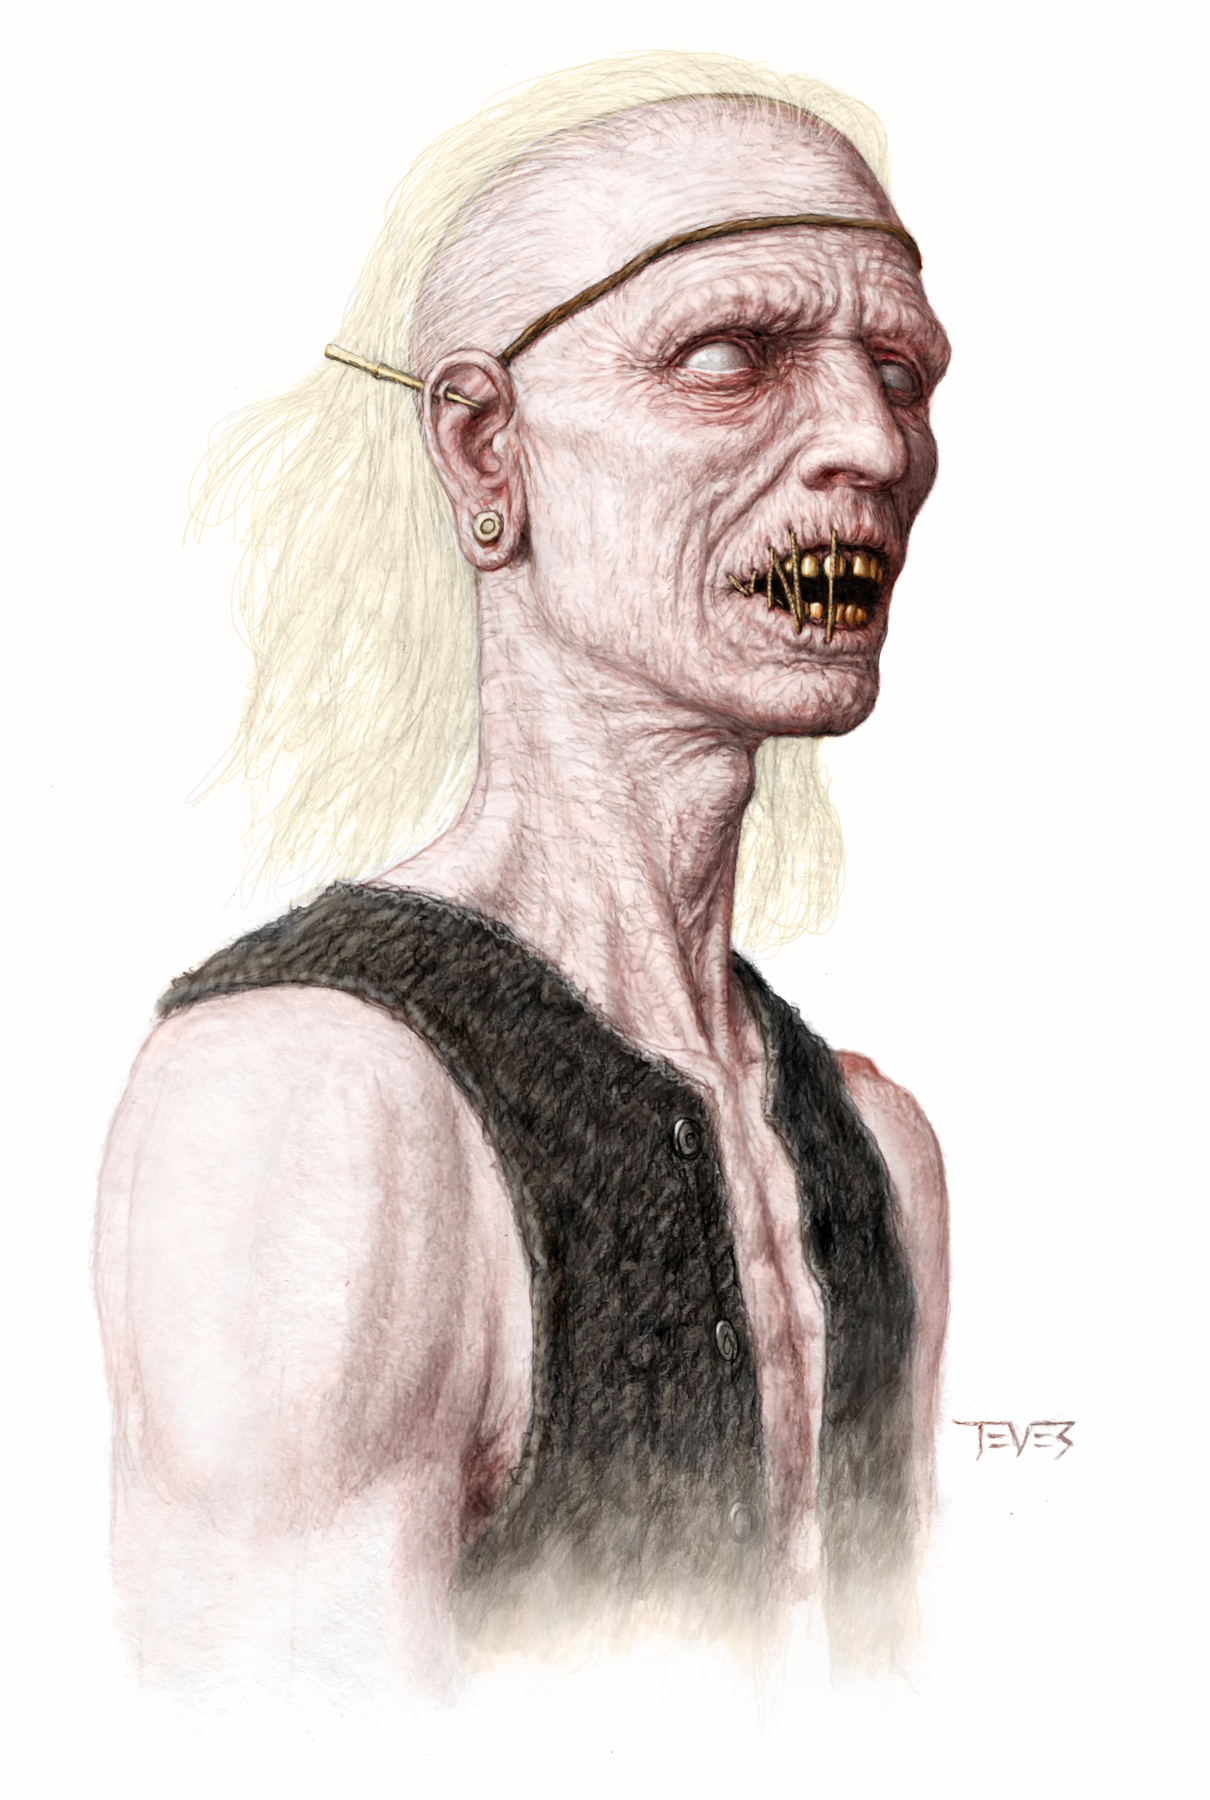 http://collider.com/wp-content/uploads/pirates-of-the-caribbean-on-stranger-tides-concept-art-zombie-07.jpg